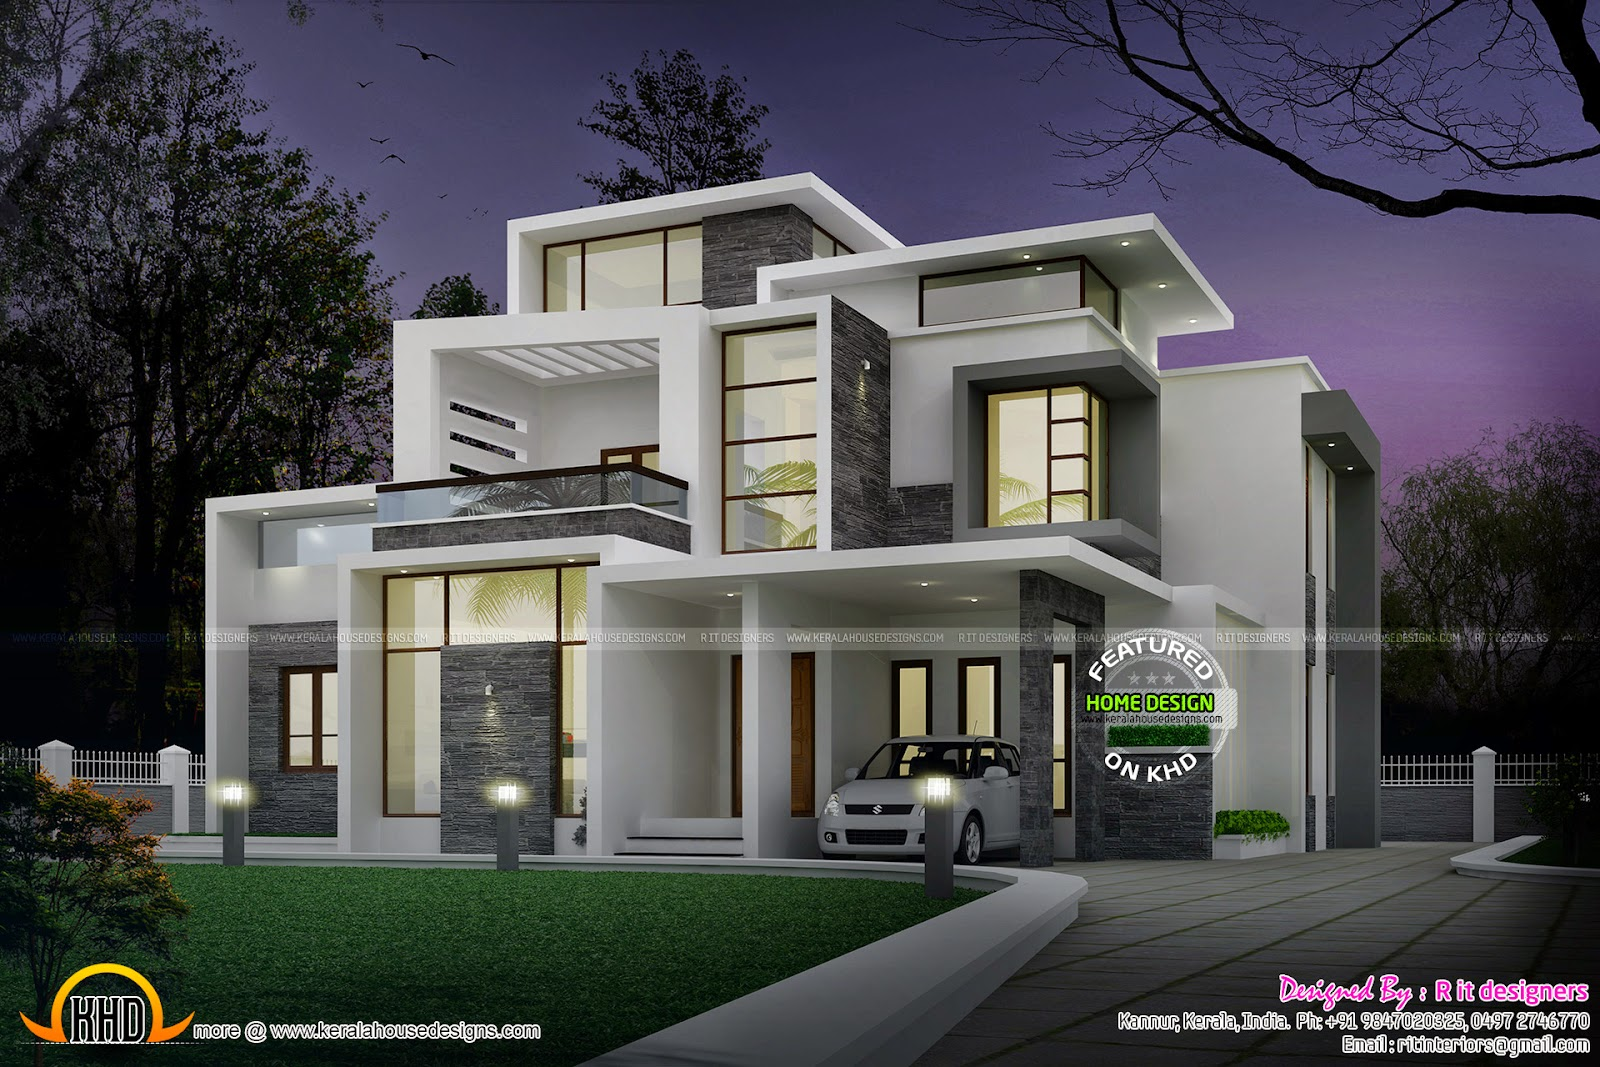 Grand contemporary home design kerala home design and for Modern home design 2015